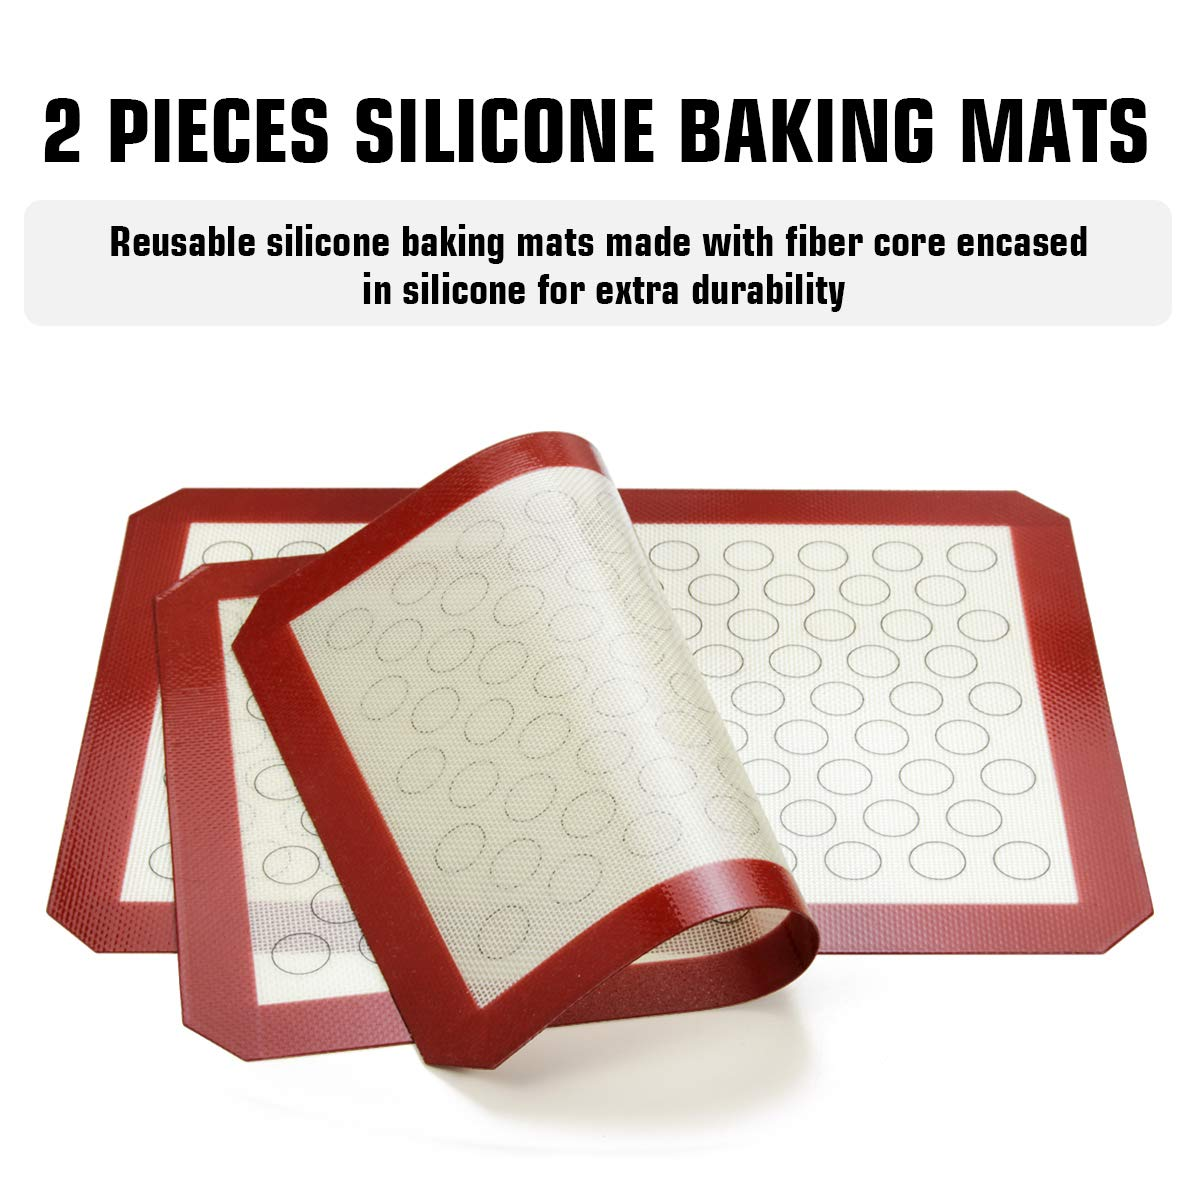 Footek Baking Sheets, Rack Set & Silicone Baking Mats, Stainless Steel Baking Pans Rectangle 16'' L×12'' W×1'' H, Non Toxic & Healthy, Mirror Polish & Easy Clean, Pack of 6 (2 Sheets + 2 Racks + 2 Mats) by Footek (Image #2)